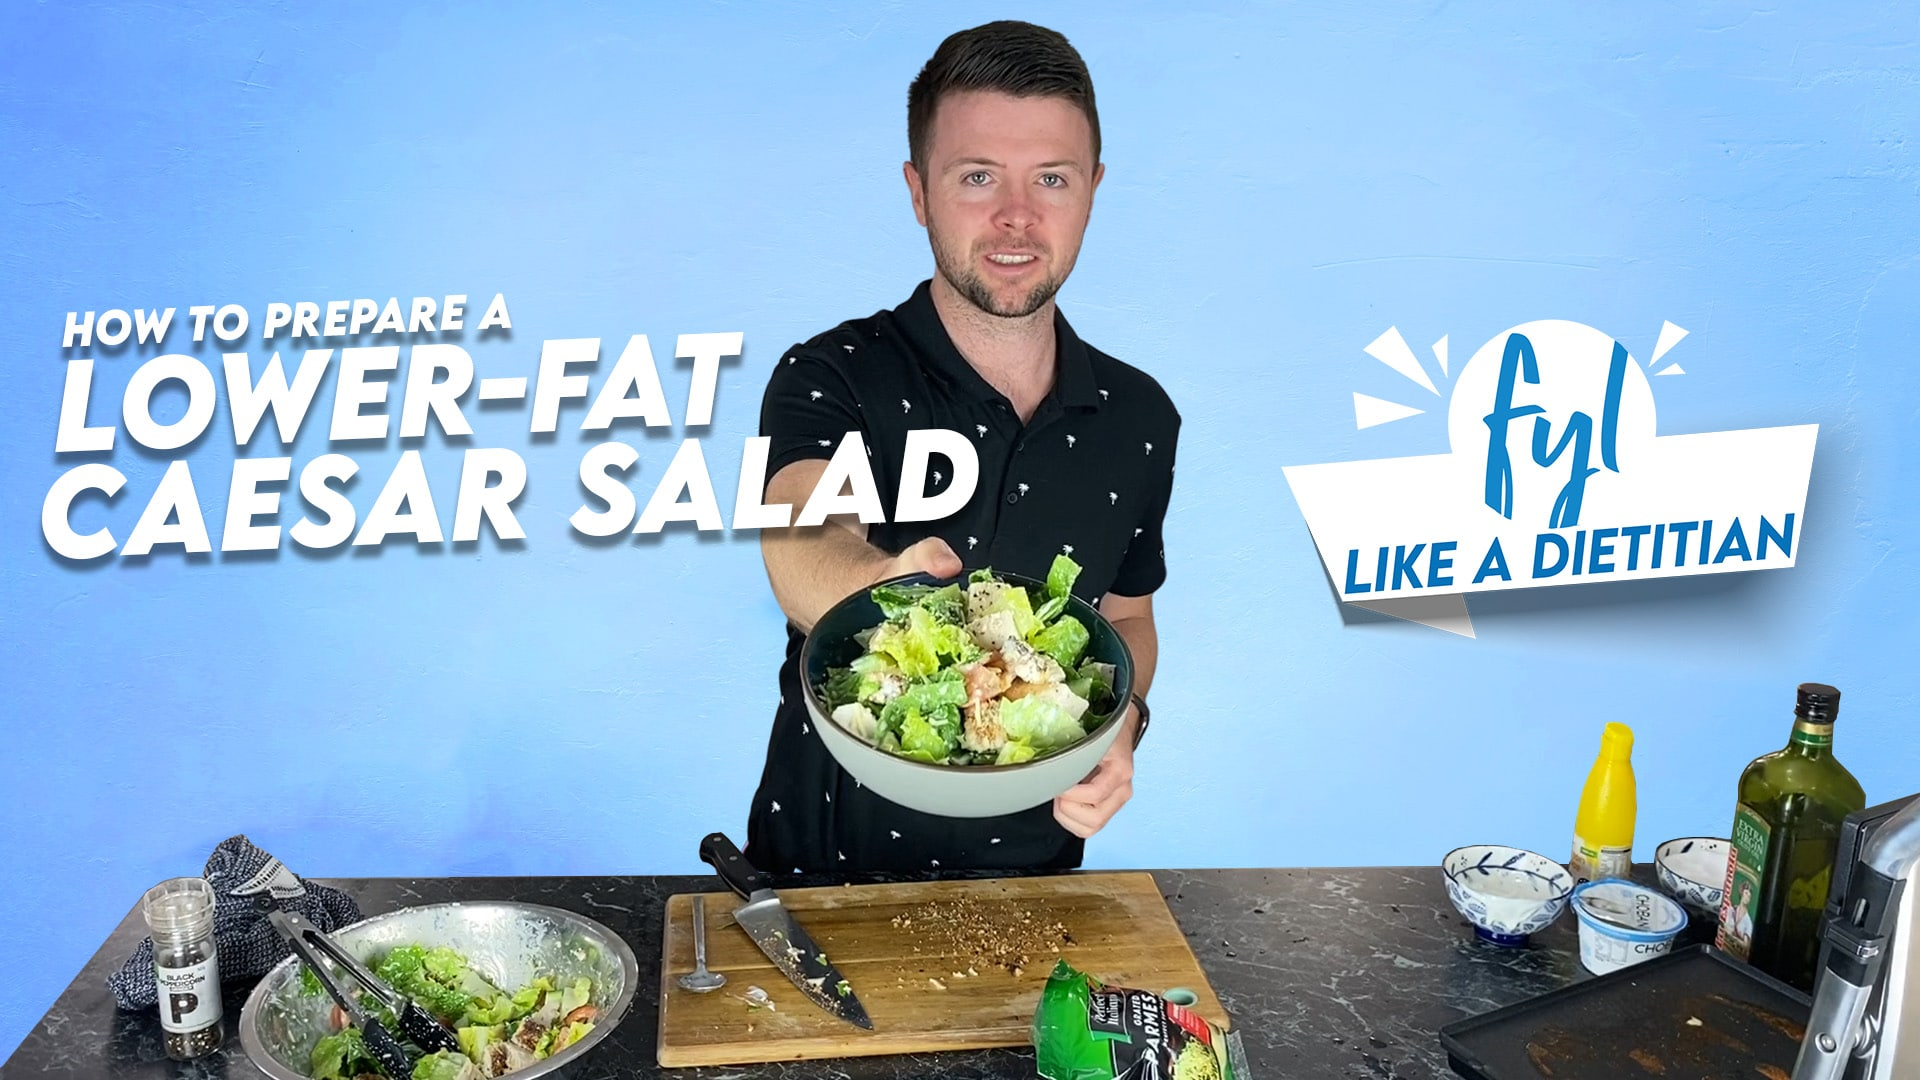 How To Prepare a Lower-Fat Caesar Salad (Like a Dietitian)